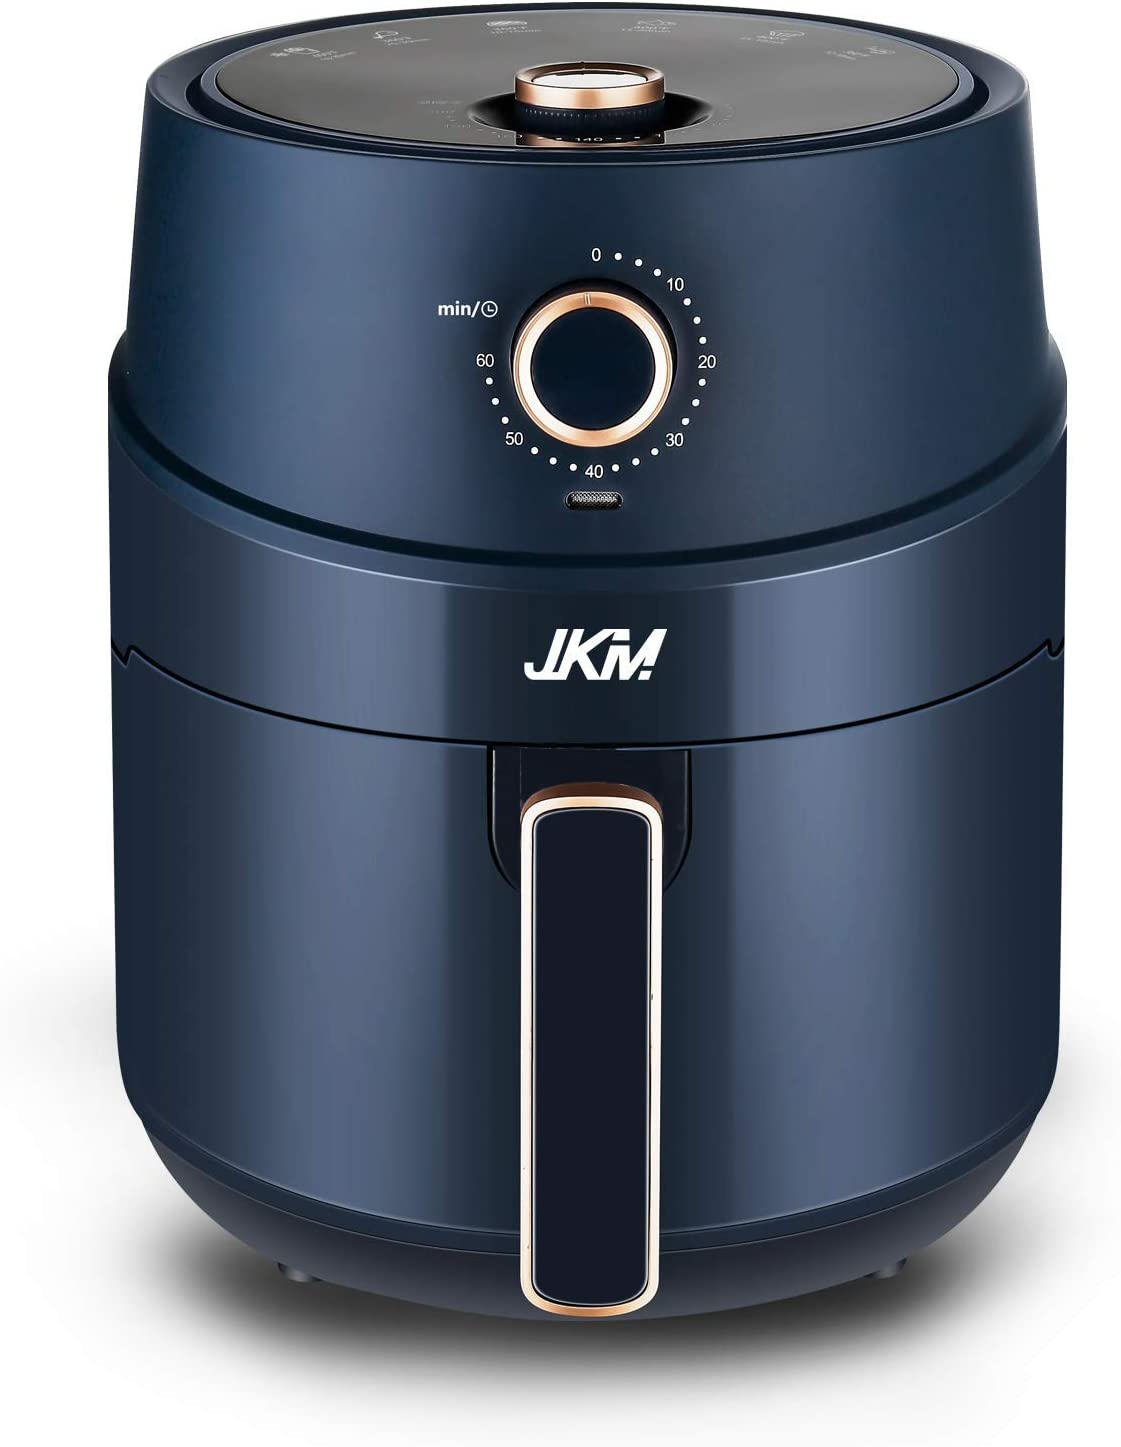 JKM Air Fryer Oven 3.7 Quart, Multifunction Cooking Machine, Recipes, Adjustable Timer&Temp, No Oily Smoke Frying Cooking, Auto Shut Off, 1500W, Navy Blue